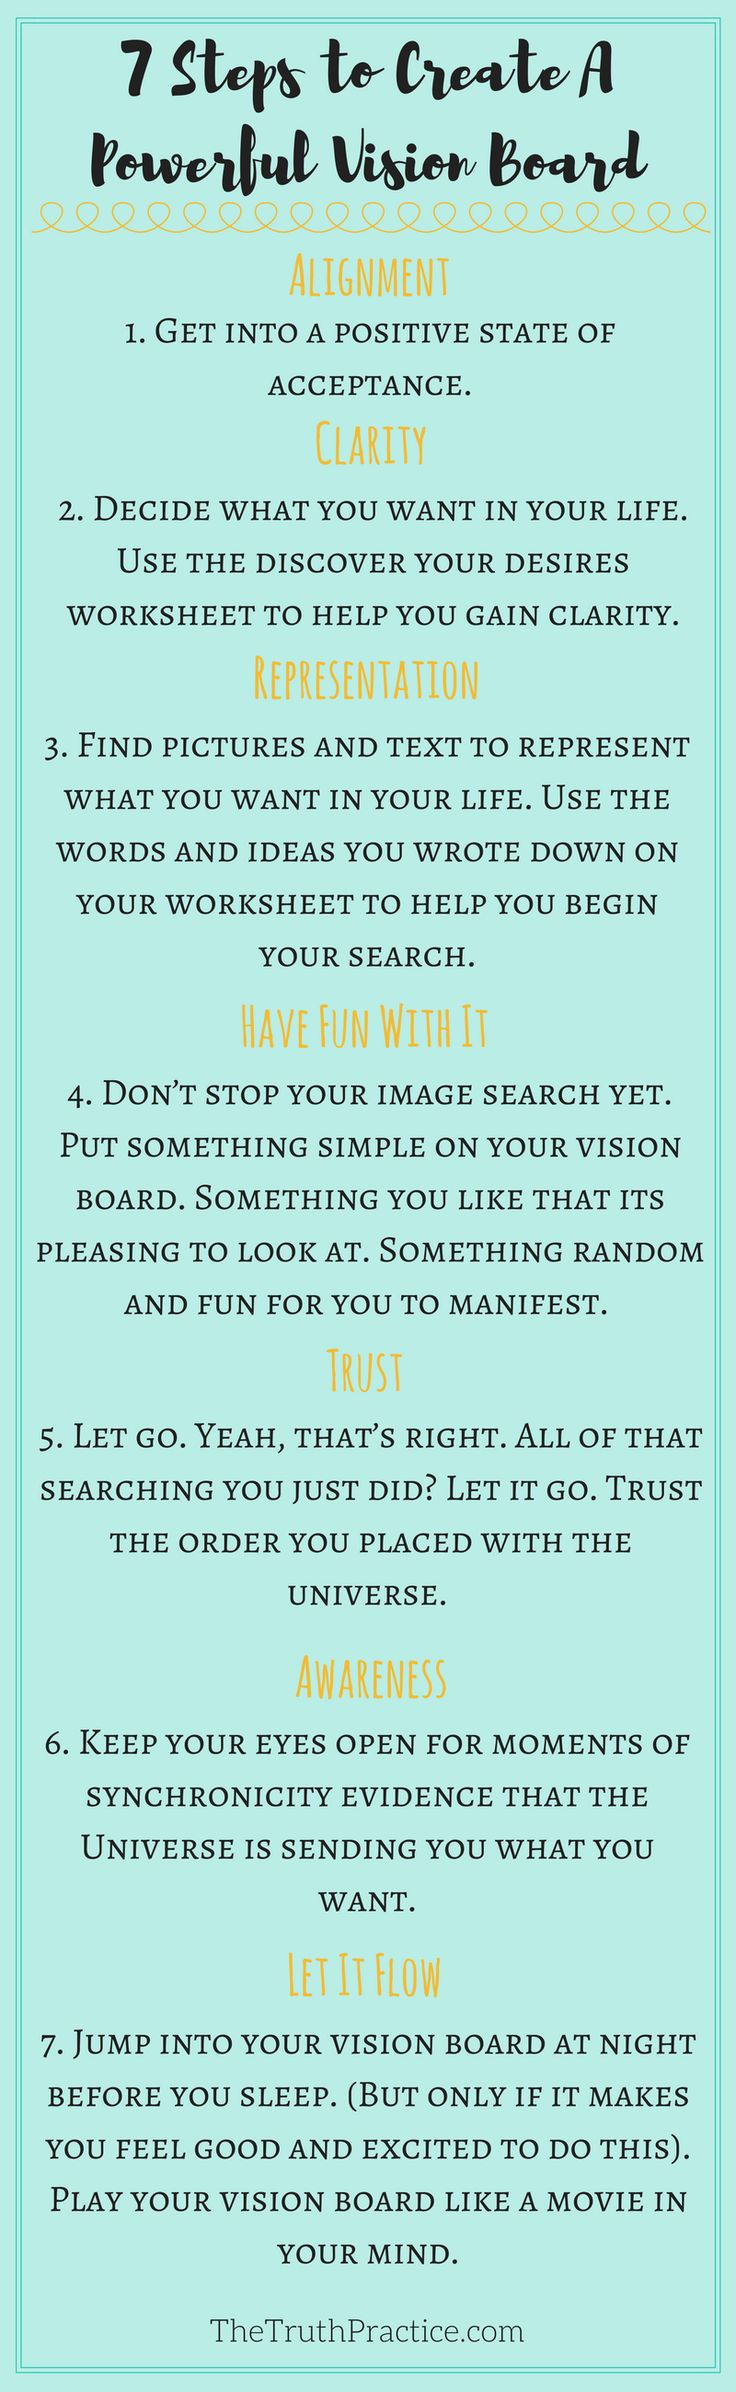 How many times have you heard of someone who made a vision board, forgot about it, and years later realized all of their dreams came true? Well, it isn't exactly that simple. Click here to find out the steps to making your own powerful vision board and get your free printable to help you define your deepest desires. These steps to a powerful vision board have helped me, and I hope they help you too! Go to TheTruthPractice.com to read more about inspiration, authenticity, fulfillment…